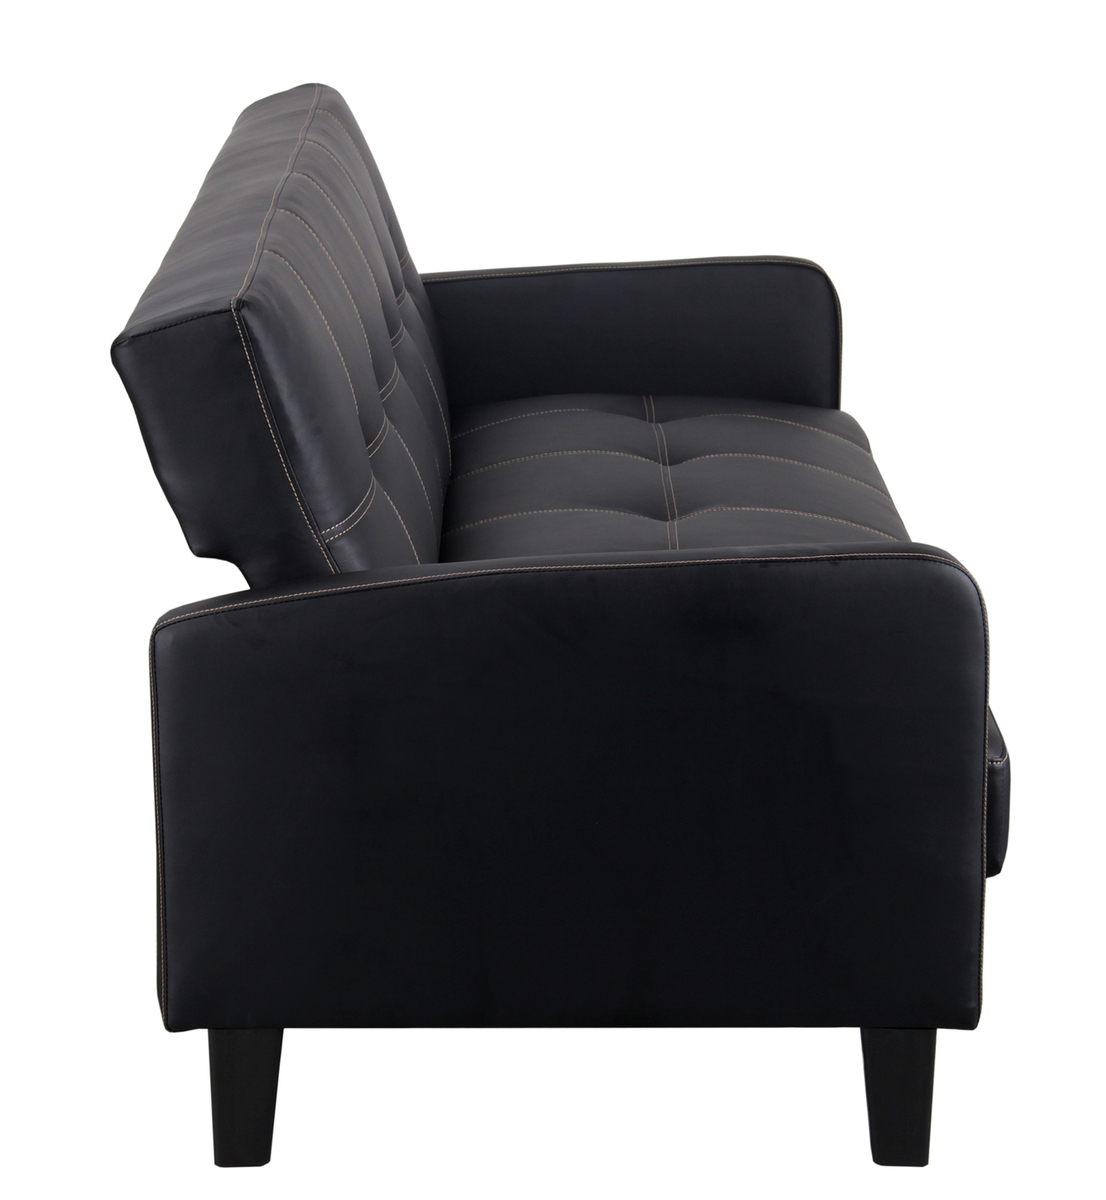 schlafsofa relax maredo kunstleder schwarz ebay. Black Bedroom Furniture Sets. Home Design Ideas